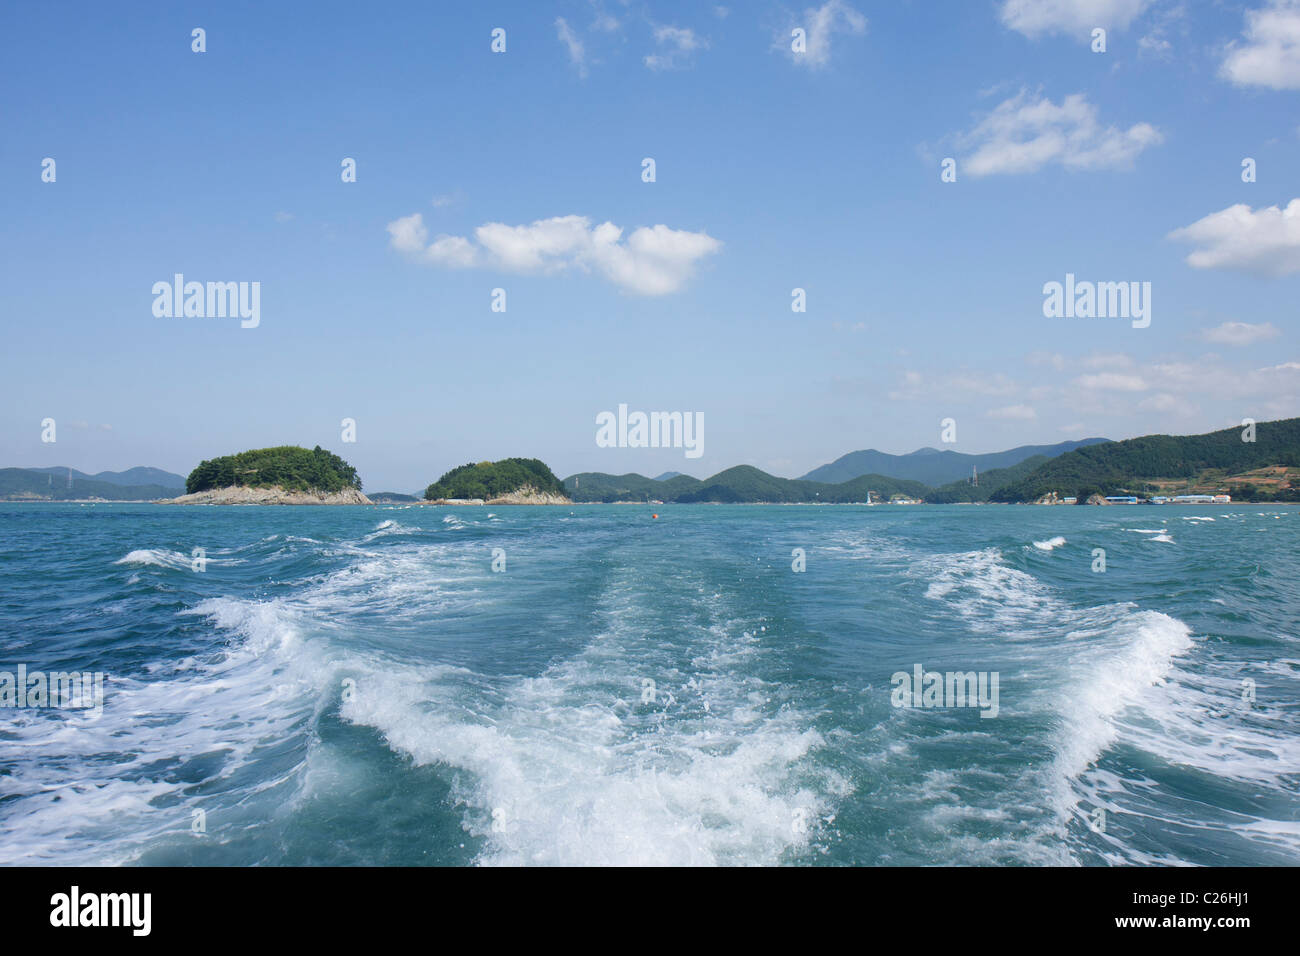 Two islets guarding Hansan Island harbor, South Korea - Stock Image